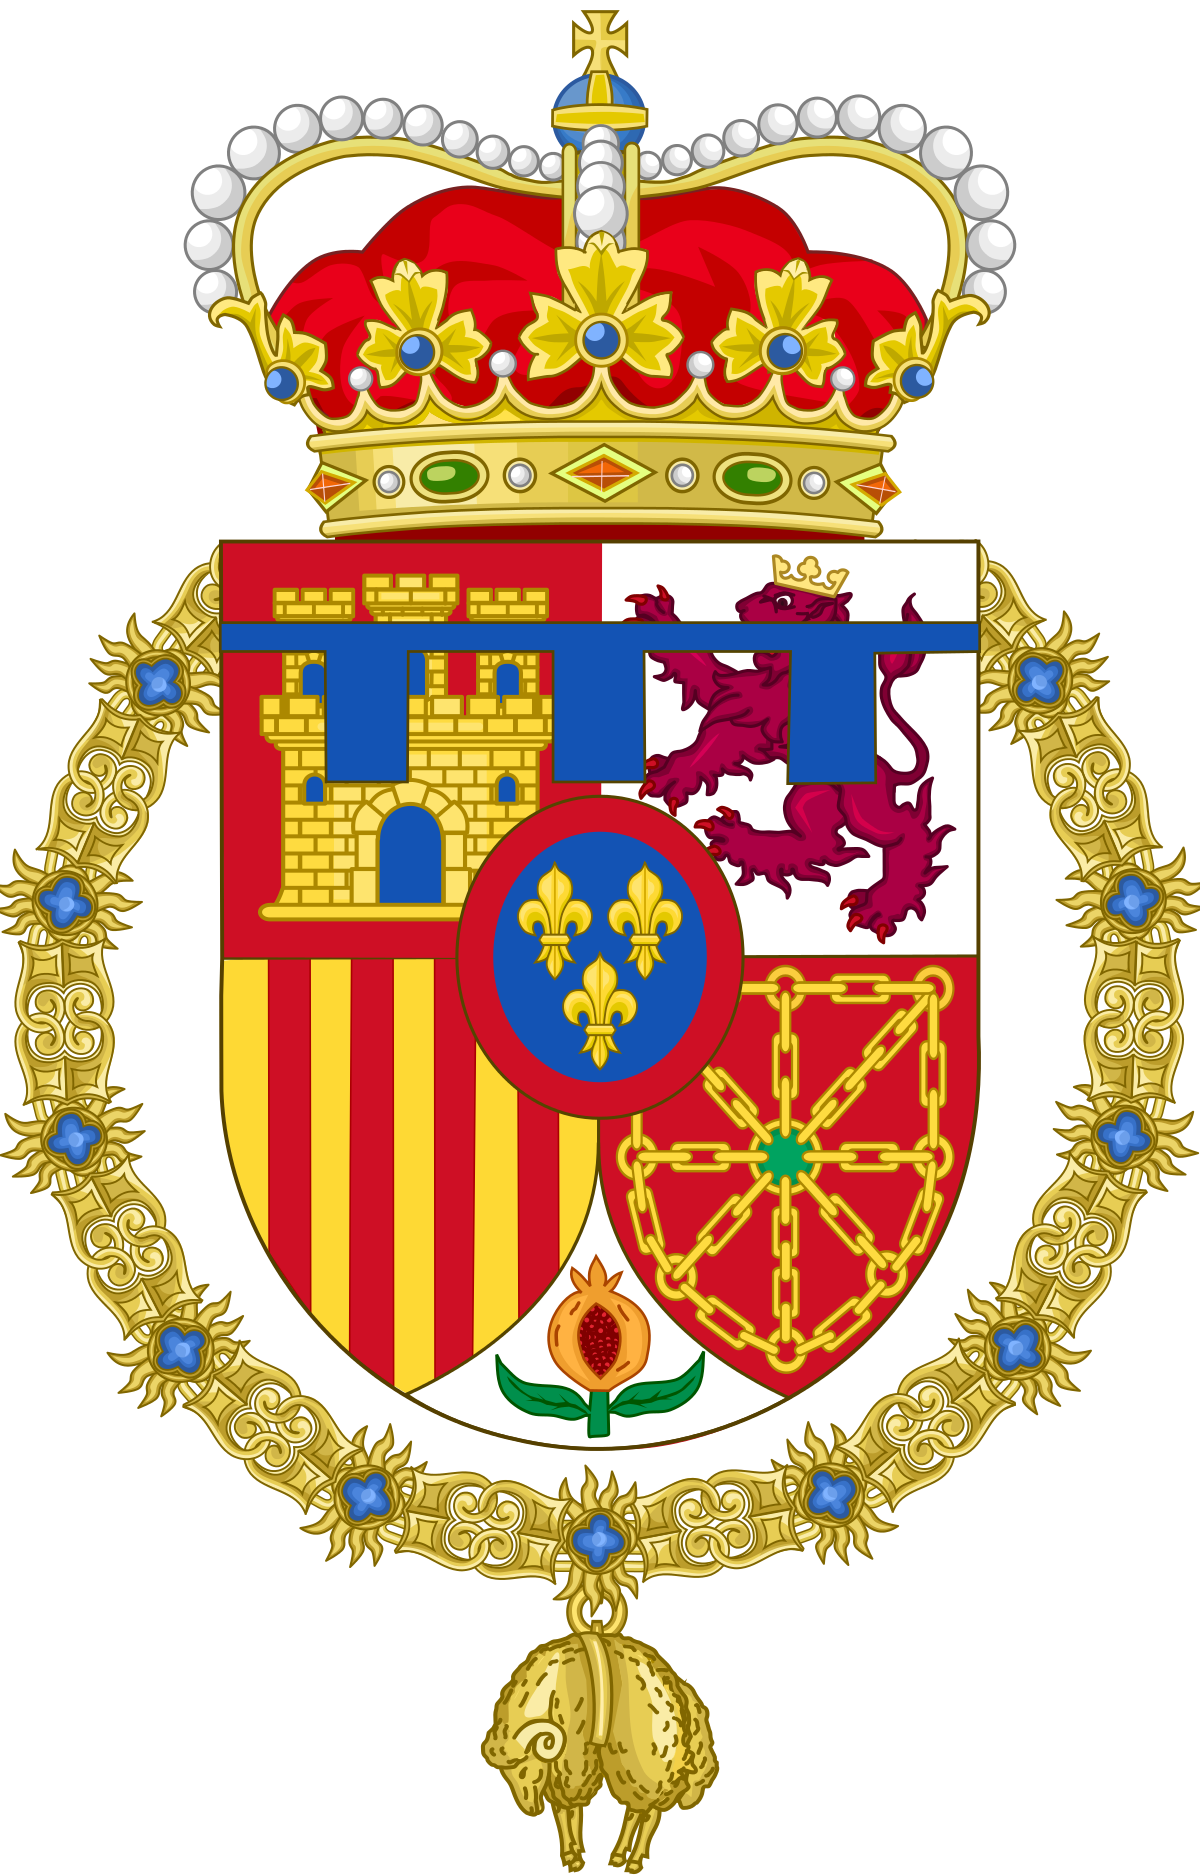 Prince Of Asturias Wikipedia Coat Of Arms Heraldry Spanish Royal Family